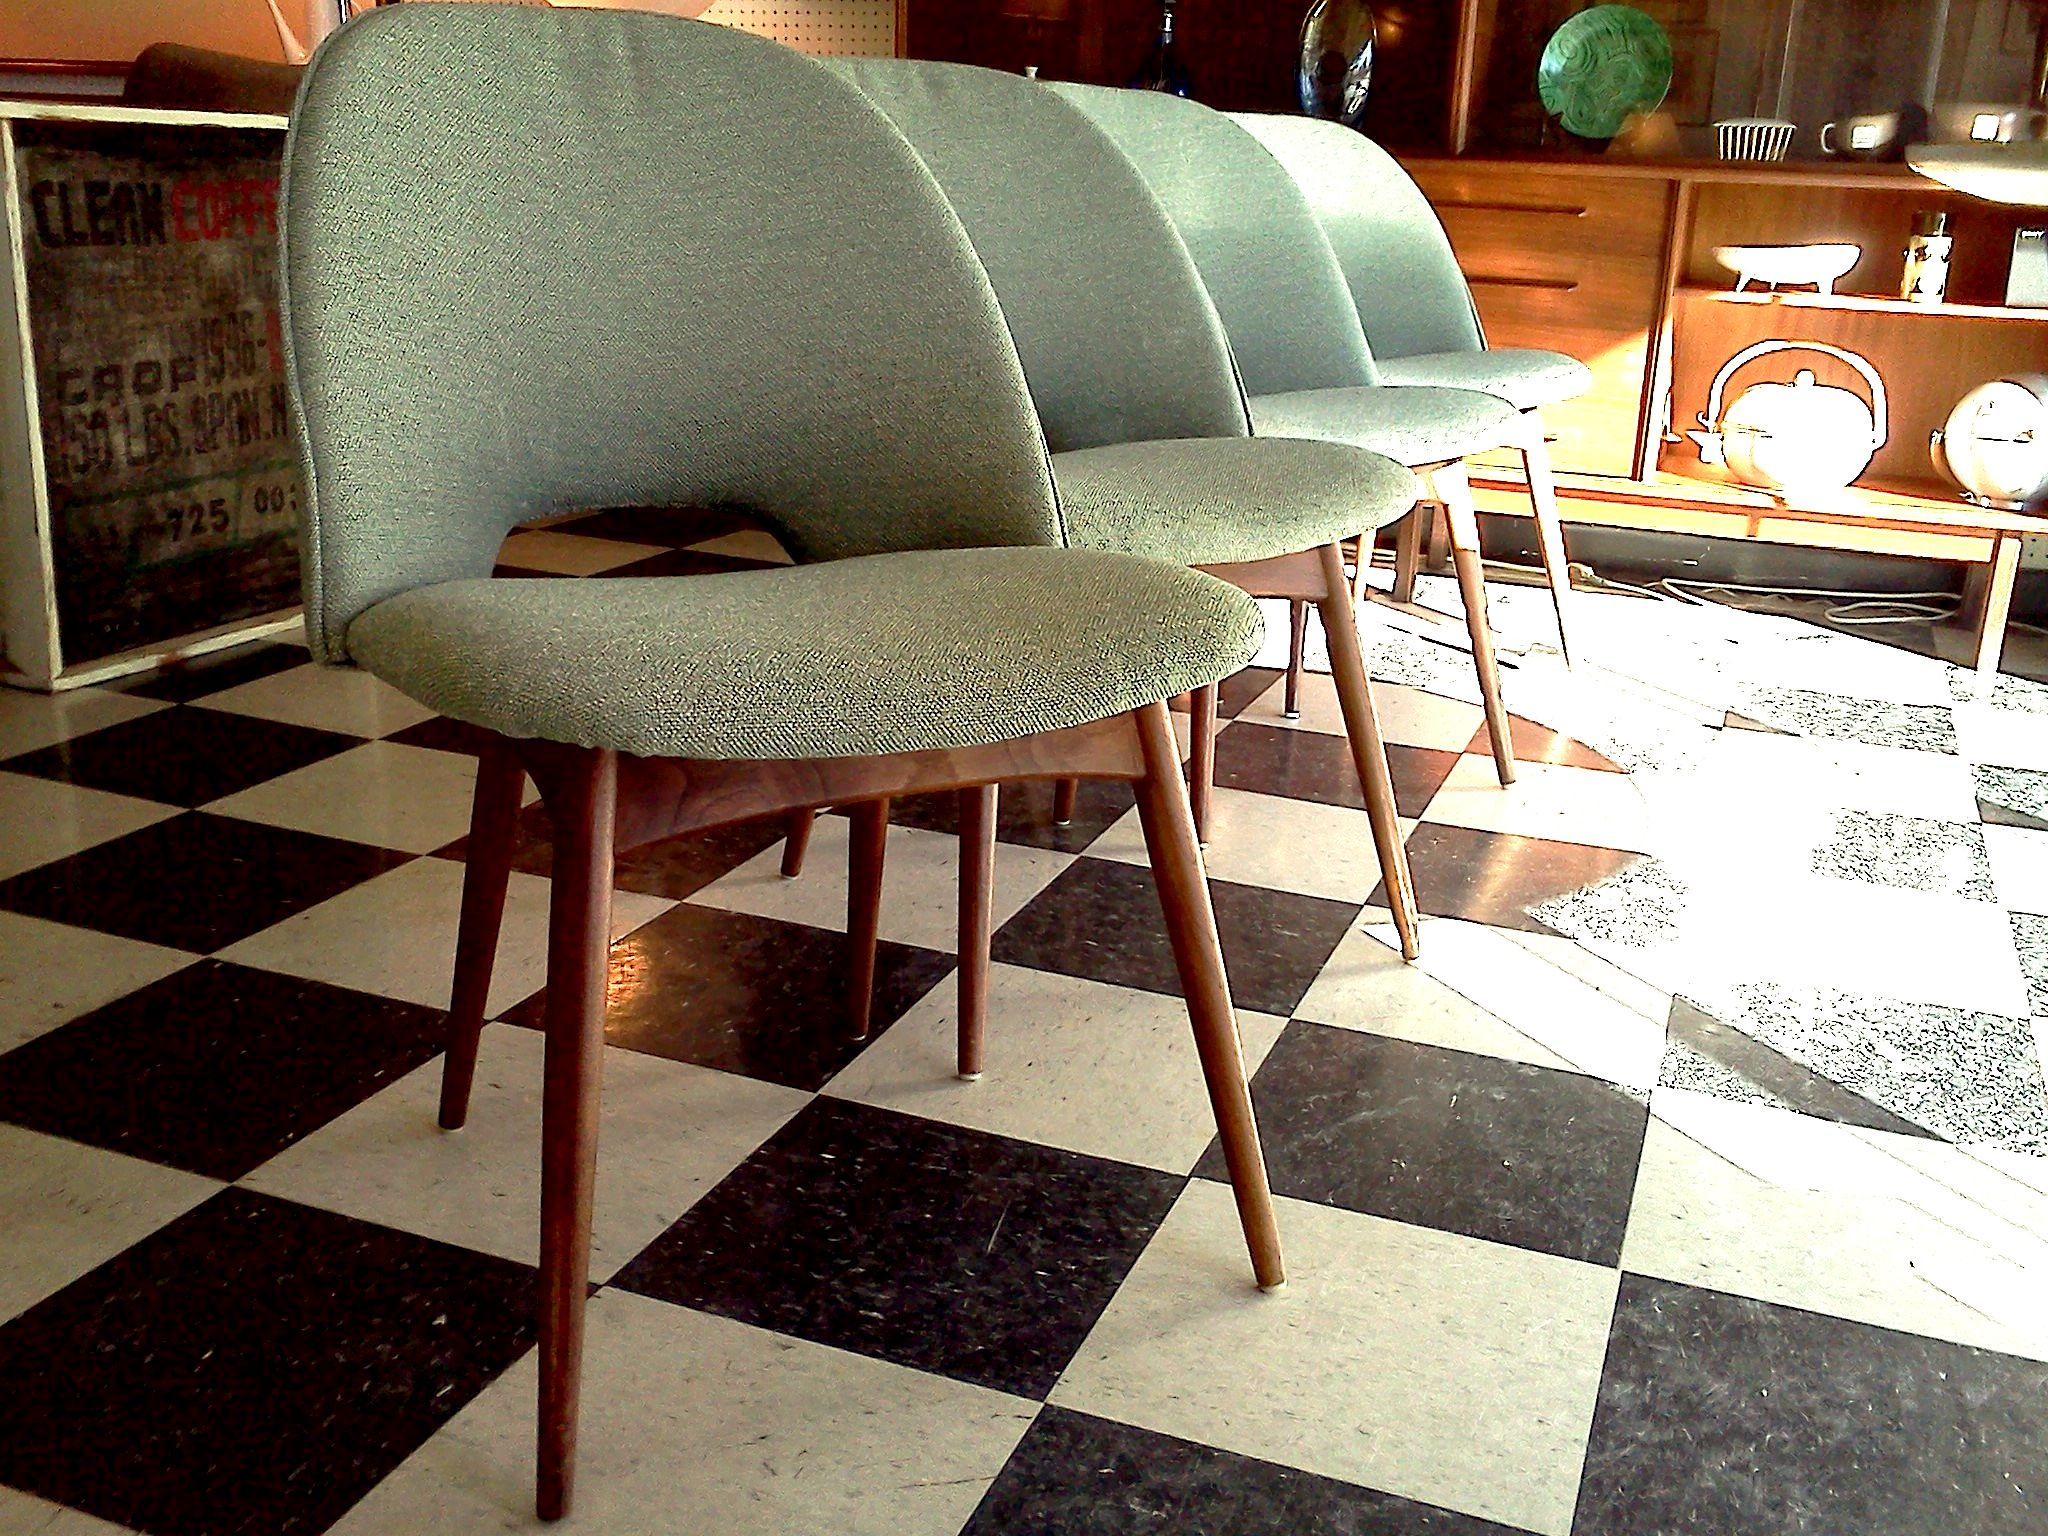 Mid Century Modern Furniture Houston mid century modern furniture images |  dining chairs (4) | cool